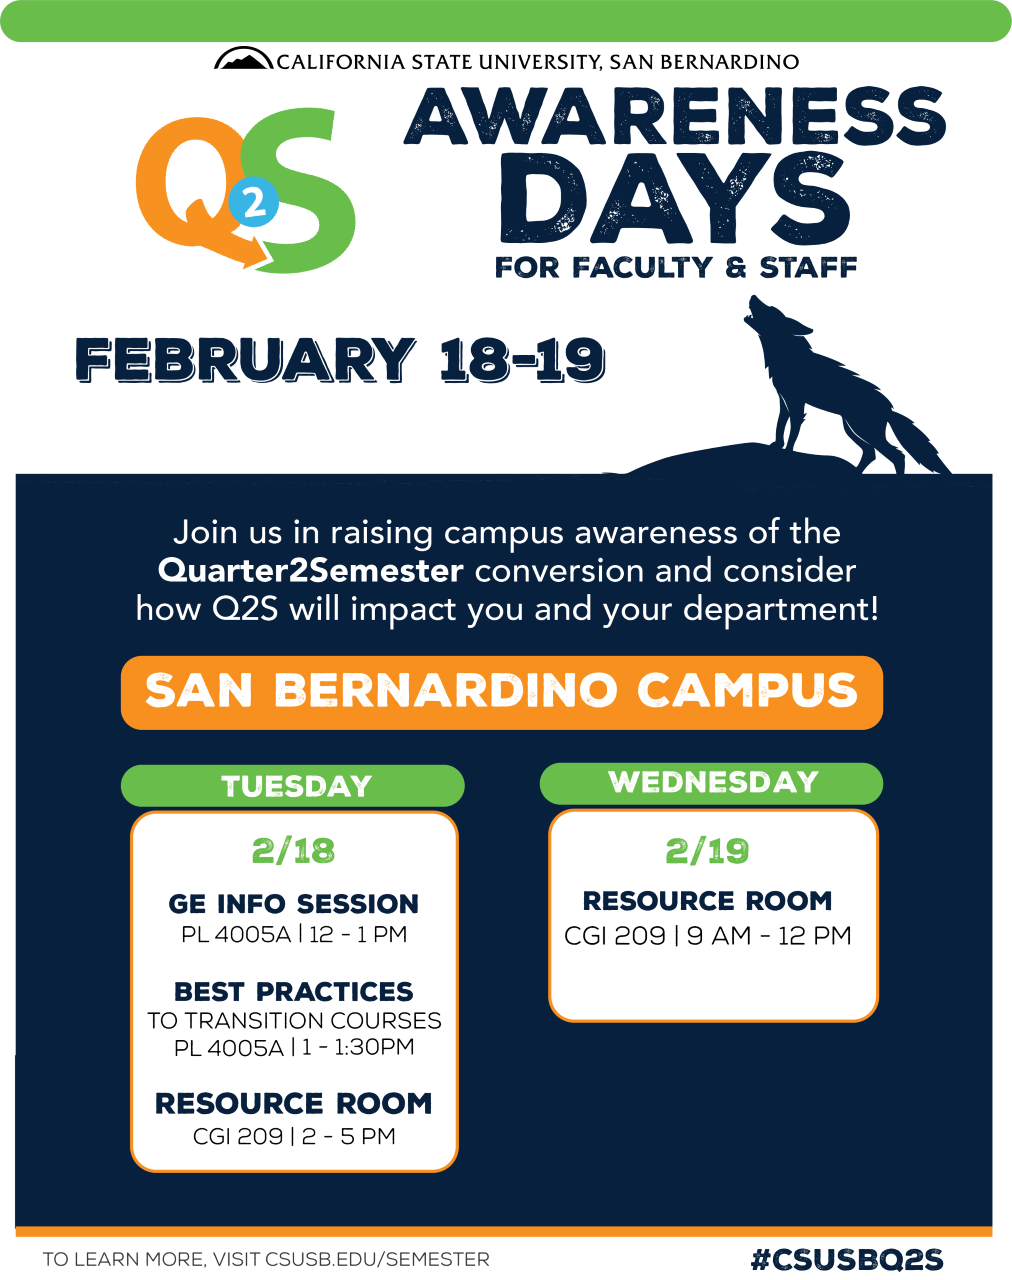 Q2S Awareness Days for faculty and staff set for Feb. 18-19